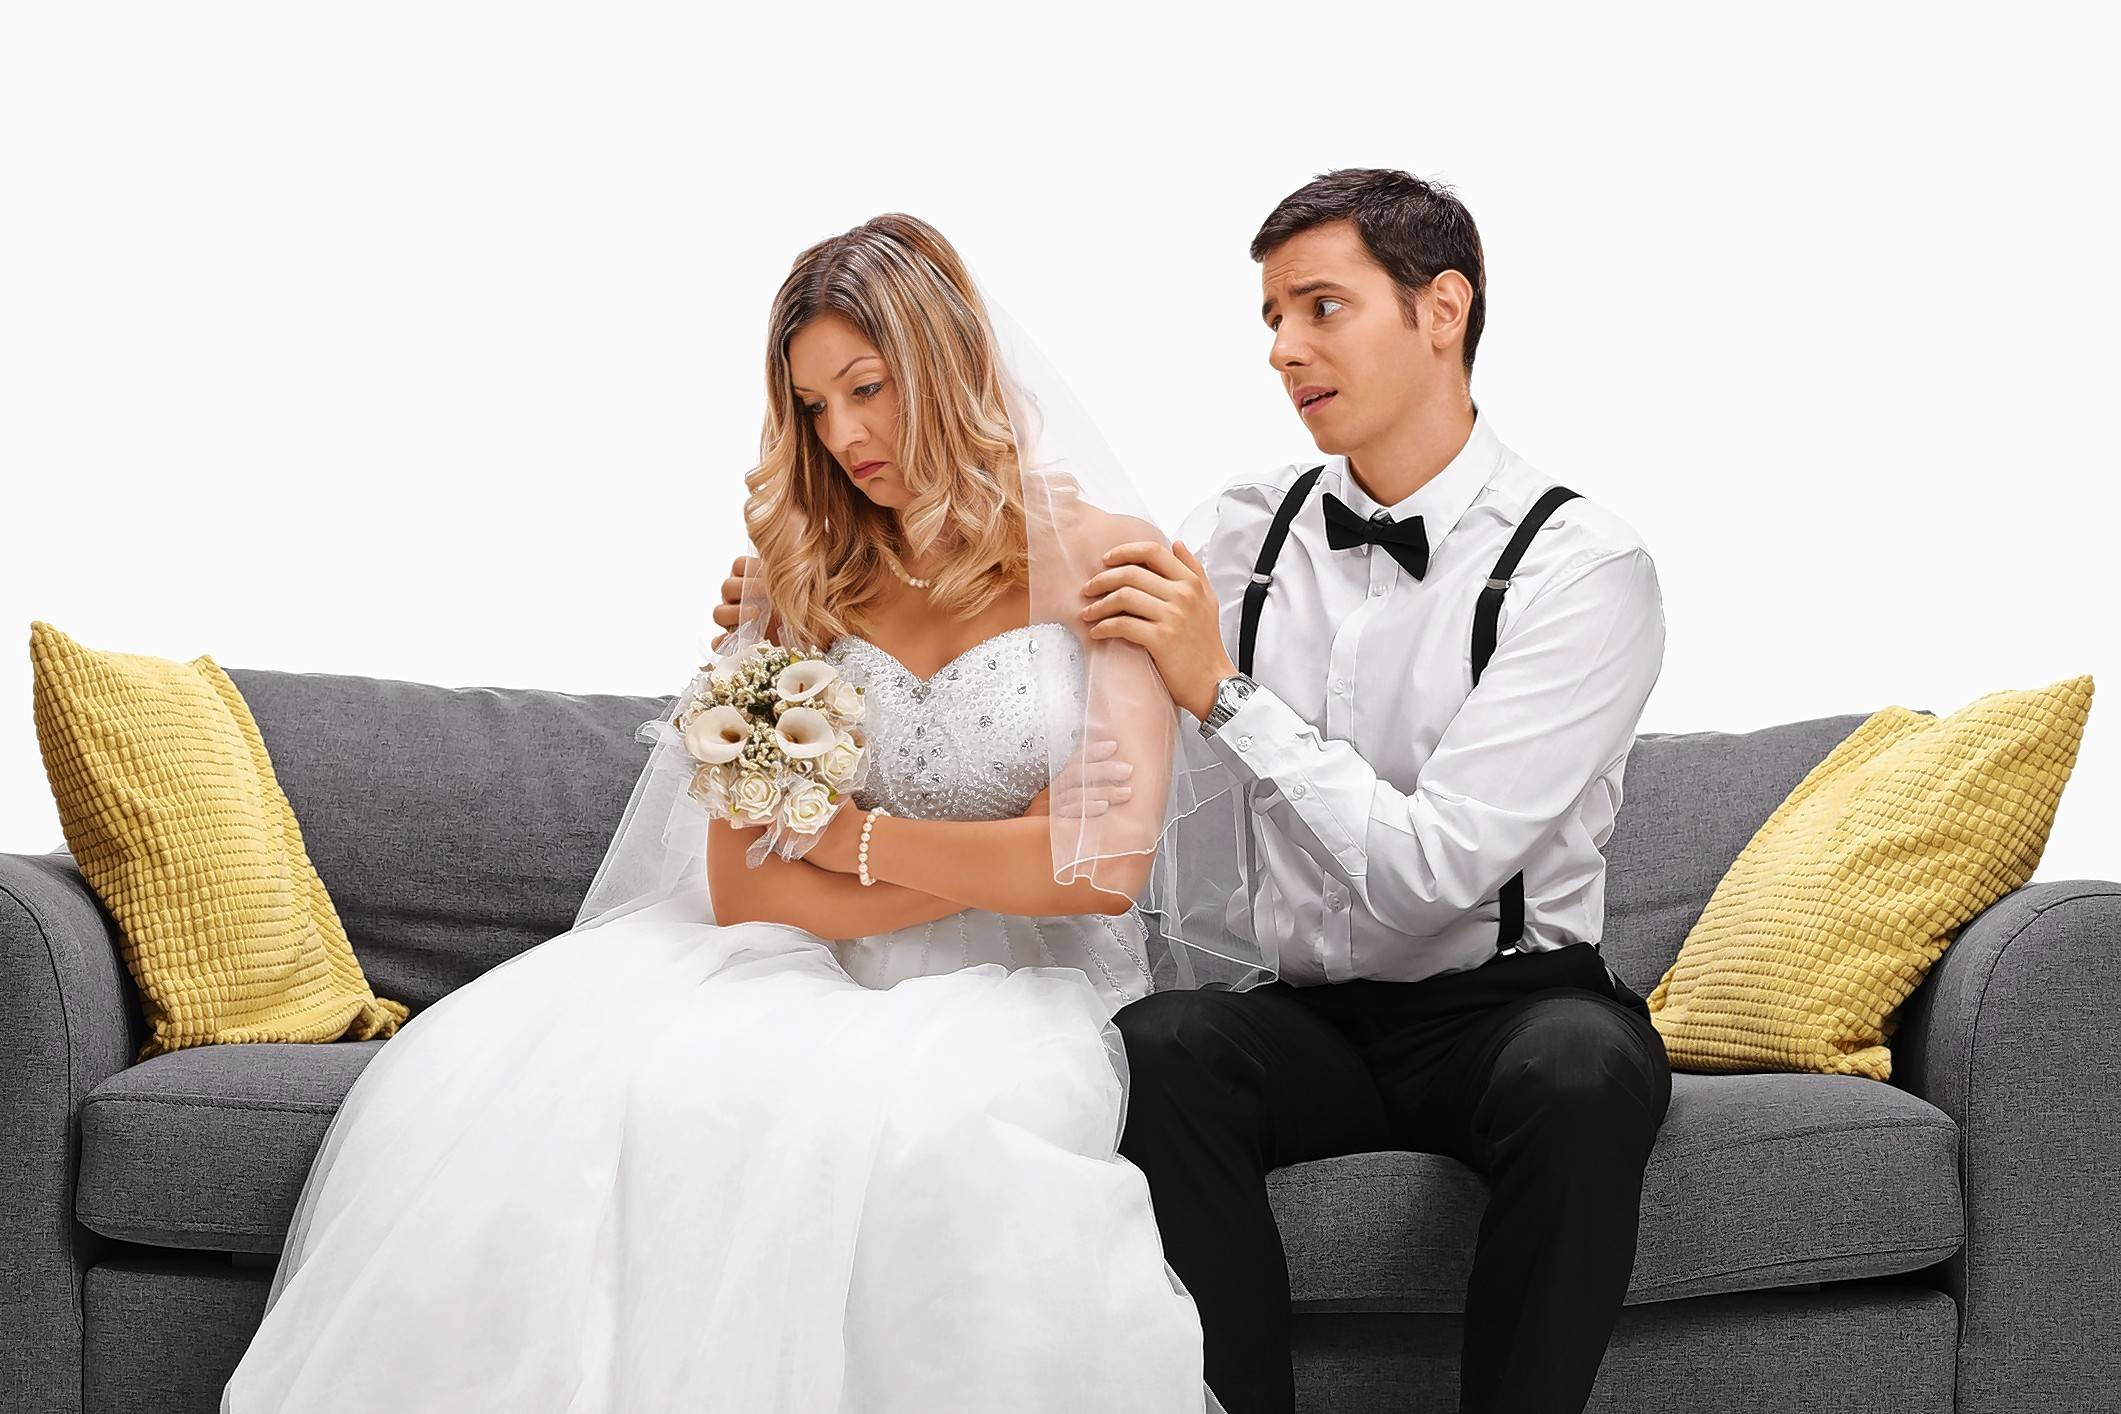 Post-wedding blues can hit both brides and grooms.